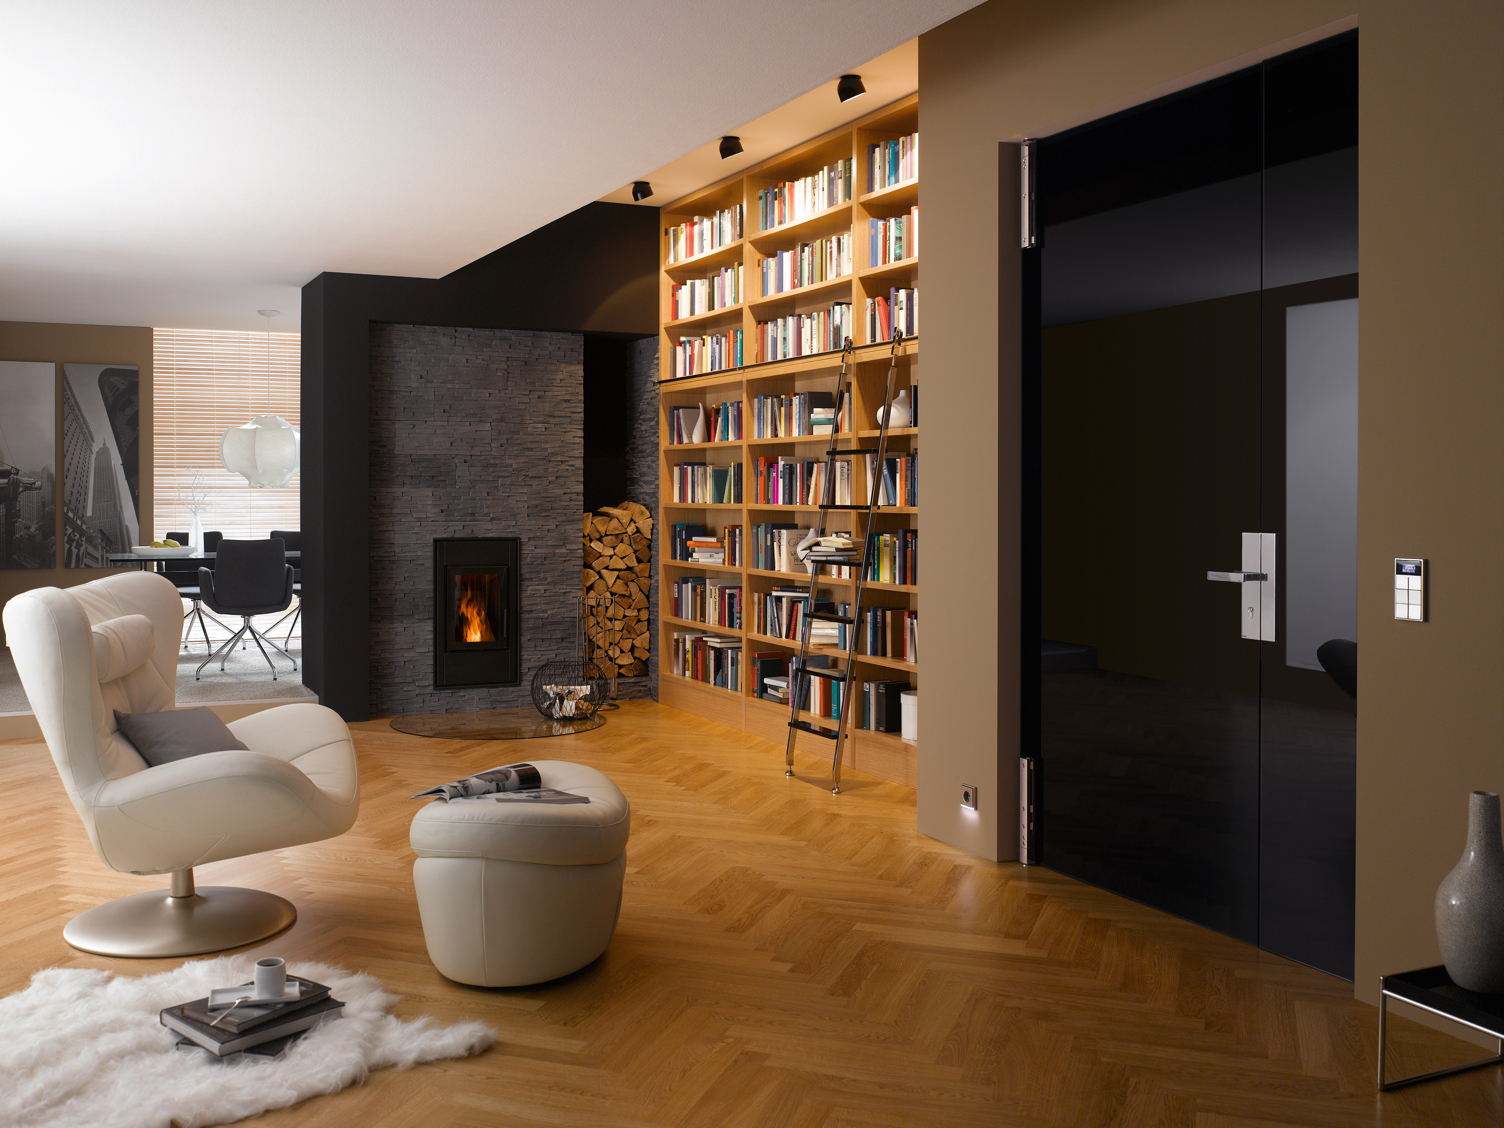 wohnzimmer feelsmart intelligent zum smarten geb ude. Black Bedroom Furniture Sets. Home Design Ideas